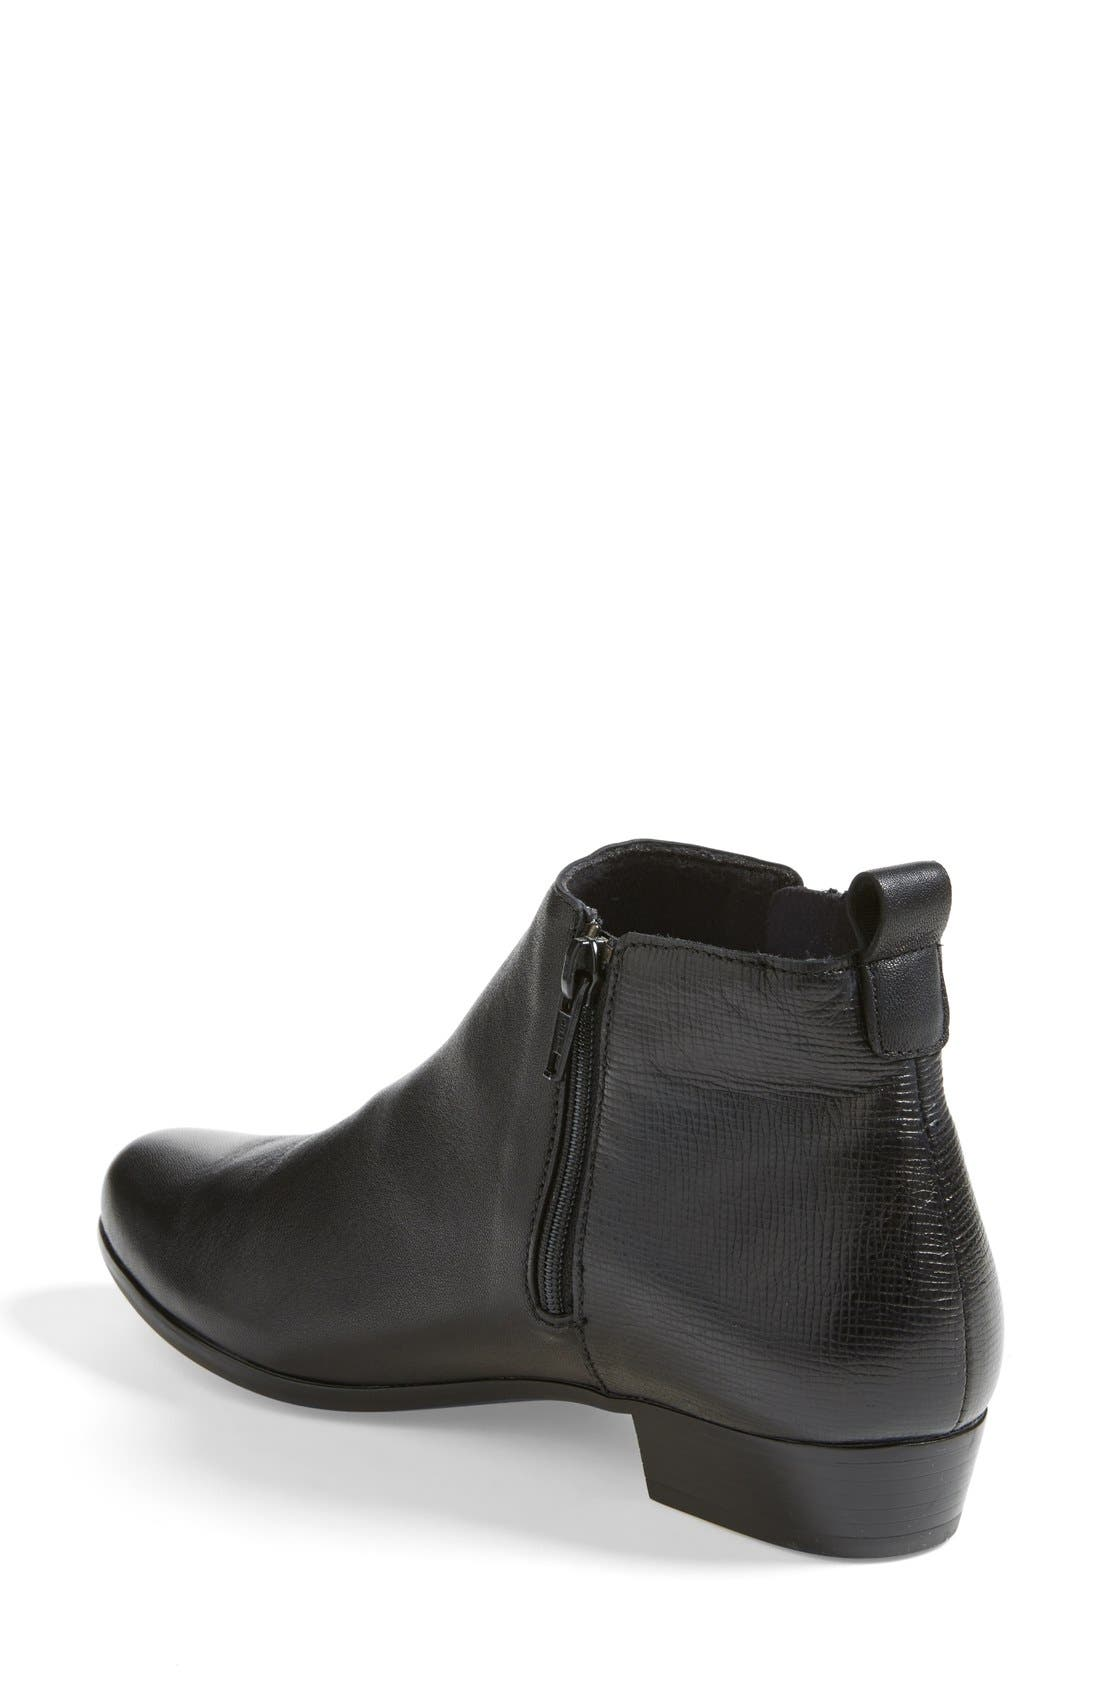 Lexi Boot,                             Alternate thumbnail 2, color,                             BLACK LEATHER